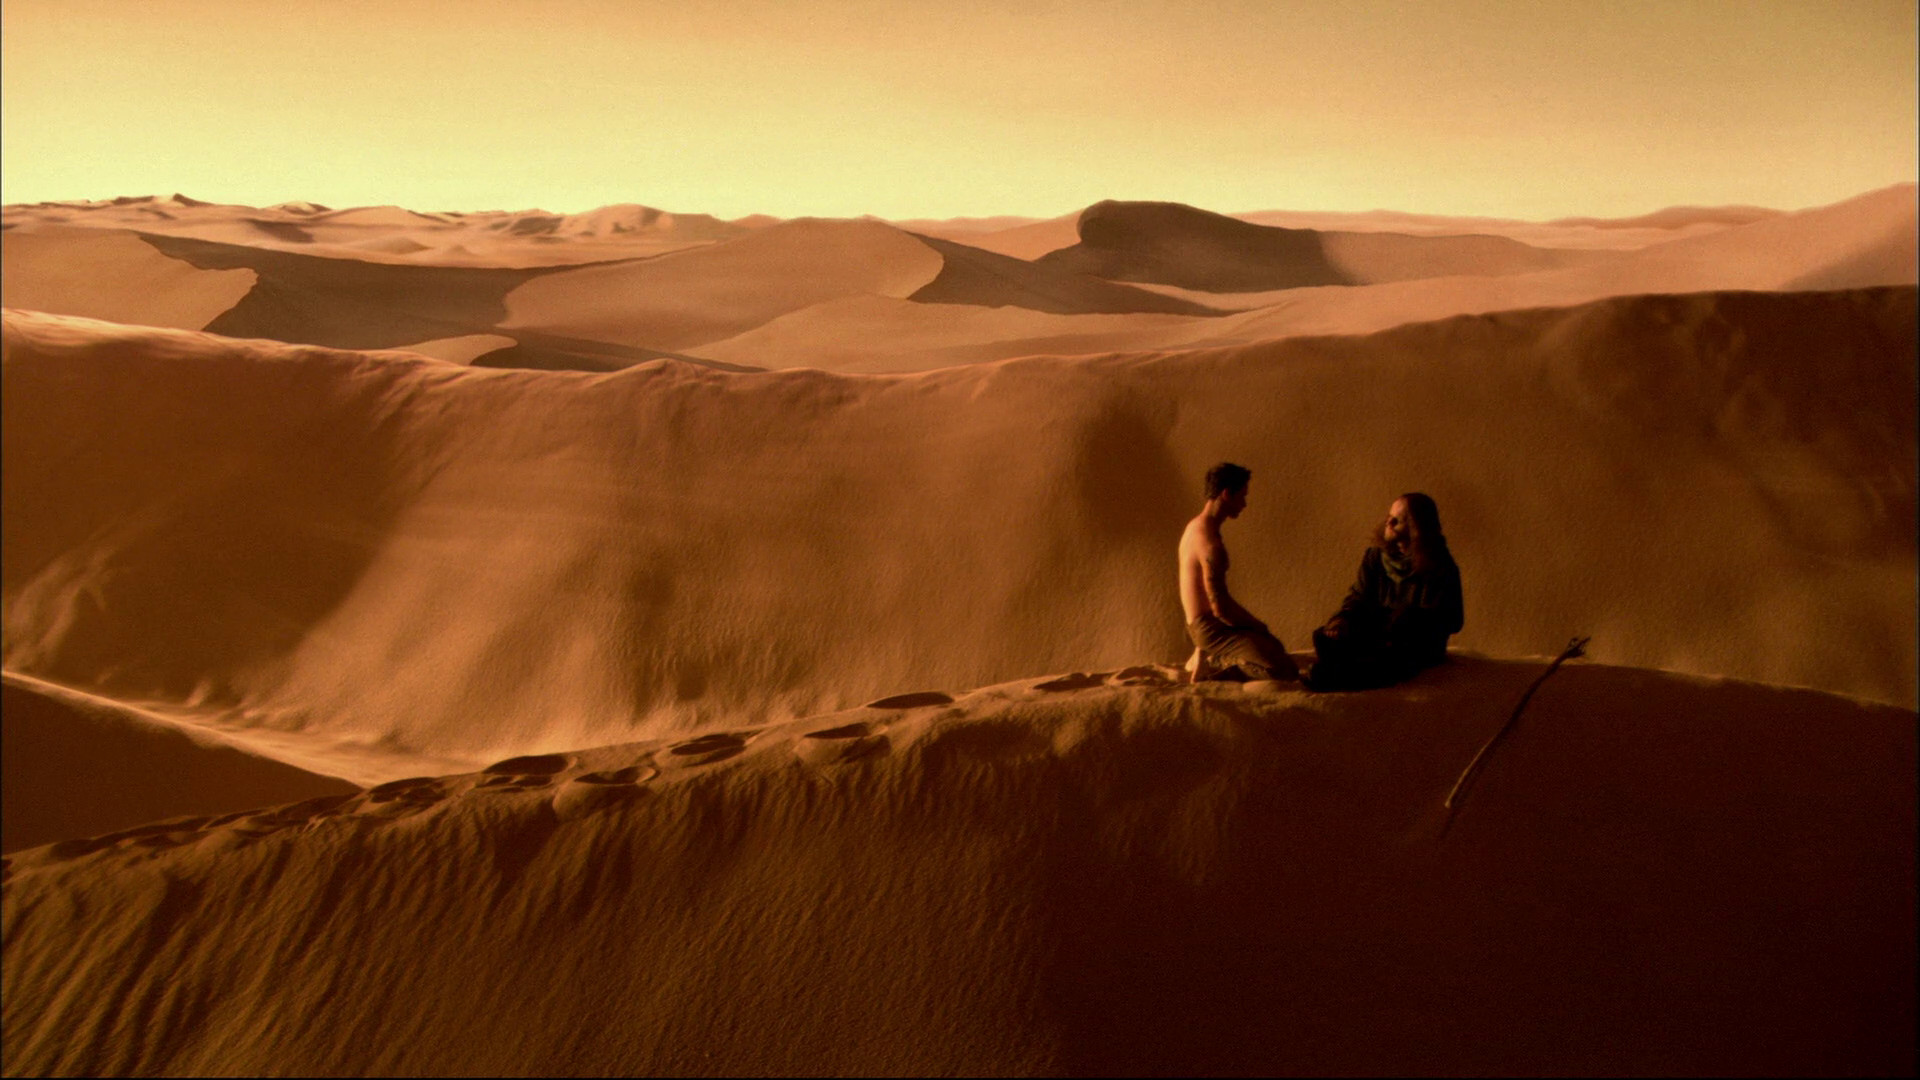 The Children of Dune has some slacking parts in it but all in all, it still  makes for a watchable affair. If you are into cool visuals and sci-fi, …